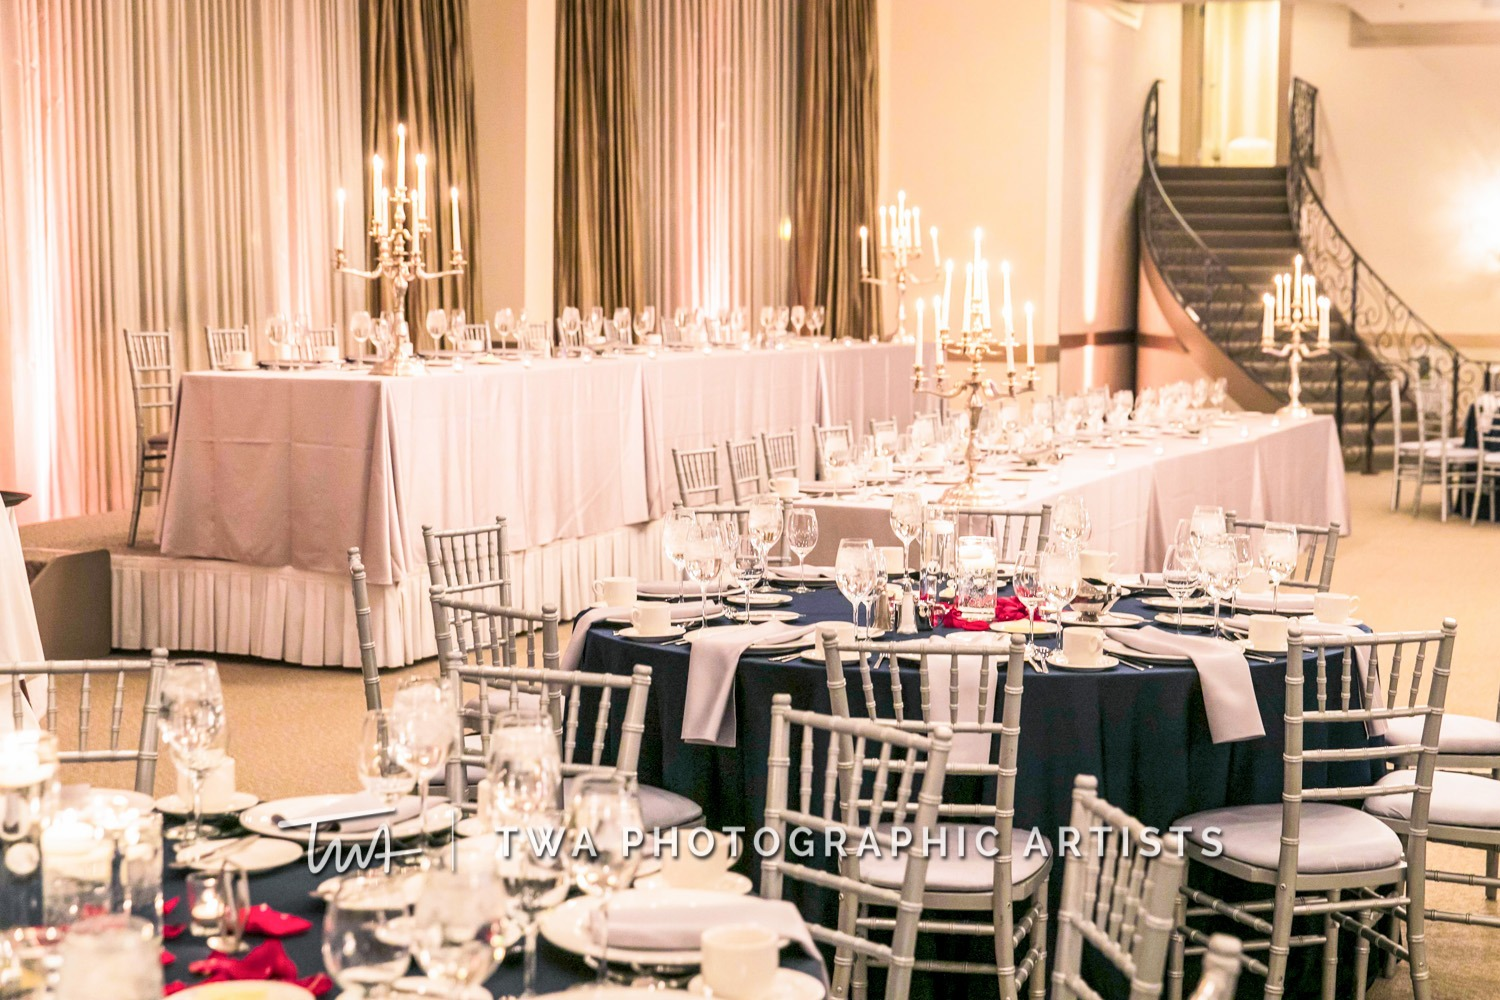 Chicago-Wedding-Photographer-TWA-Photographic-Artists-Belvedere-Banquets_Connolly_Sturlis_NO-DR-1470